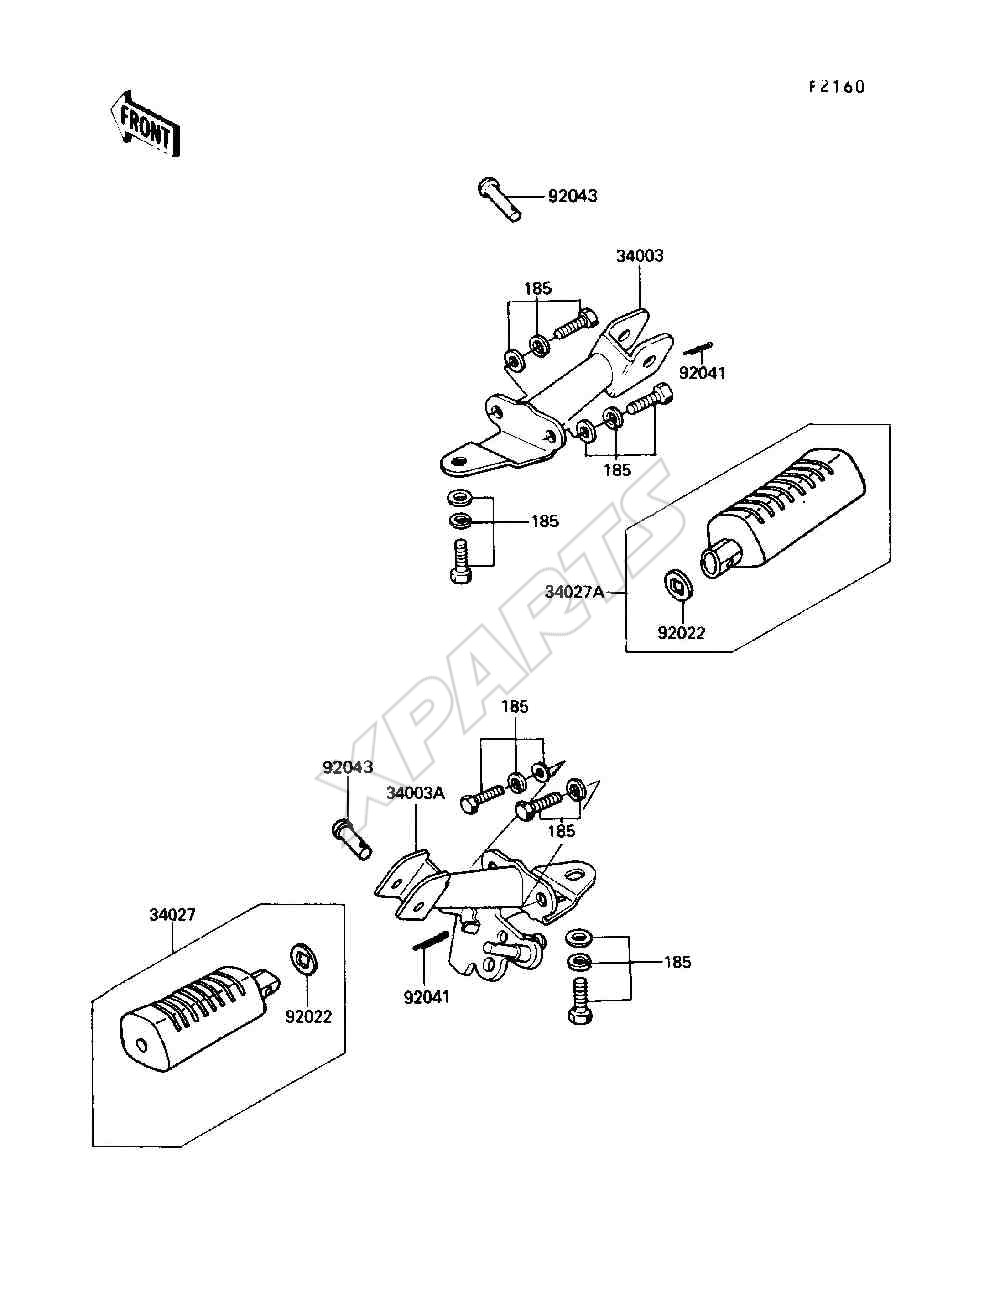 2003 Saab 9 3 Convertible Parts Diagram. Saab. Auto Wiring